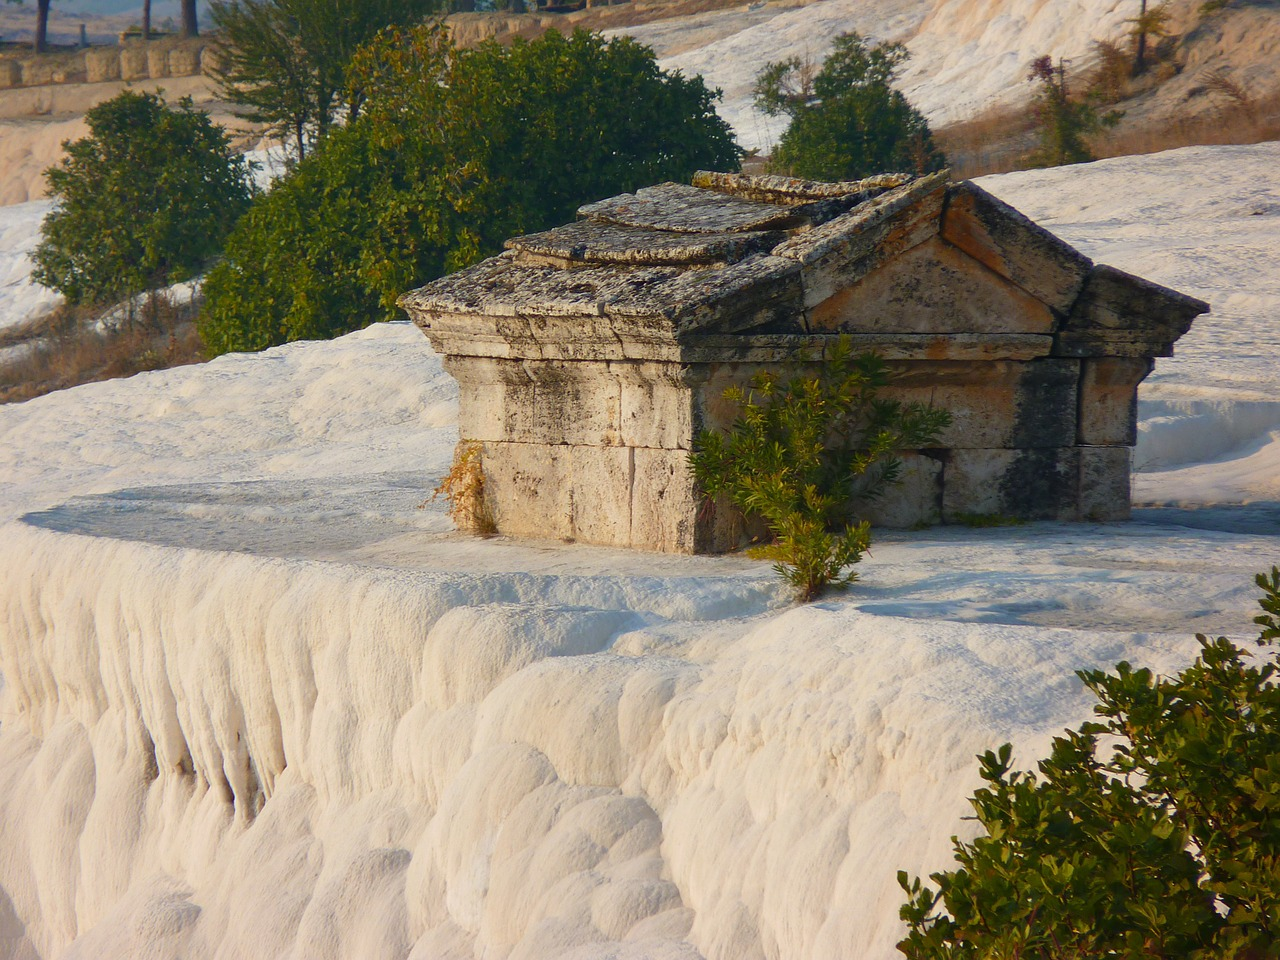 pamukkale sarcophagus tomb free photo